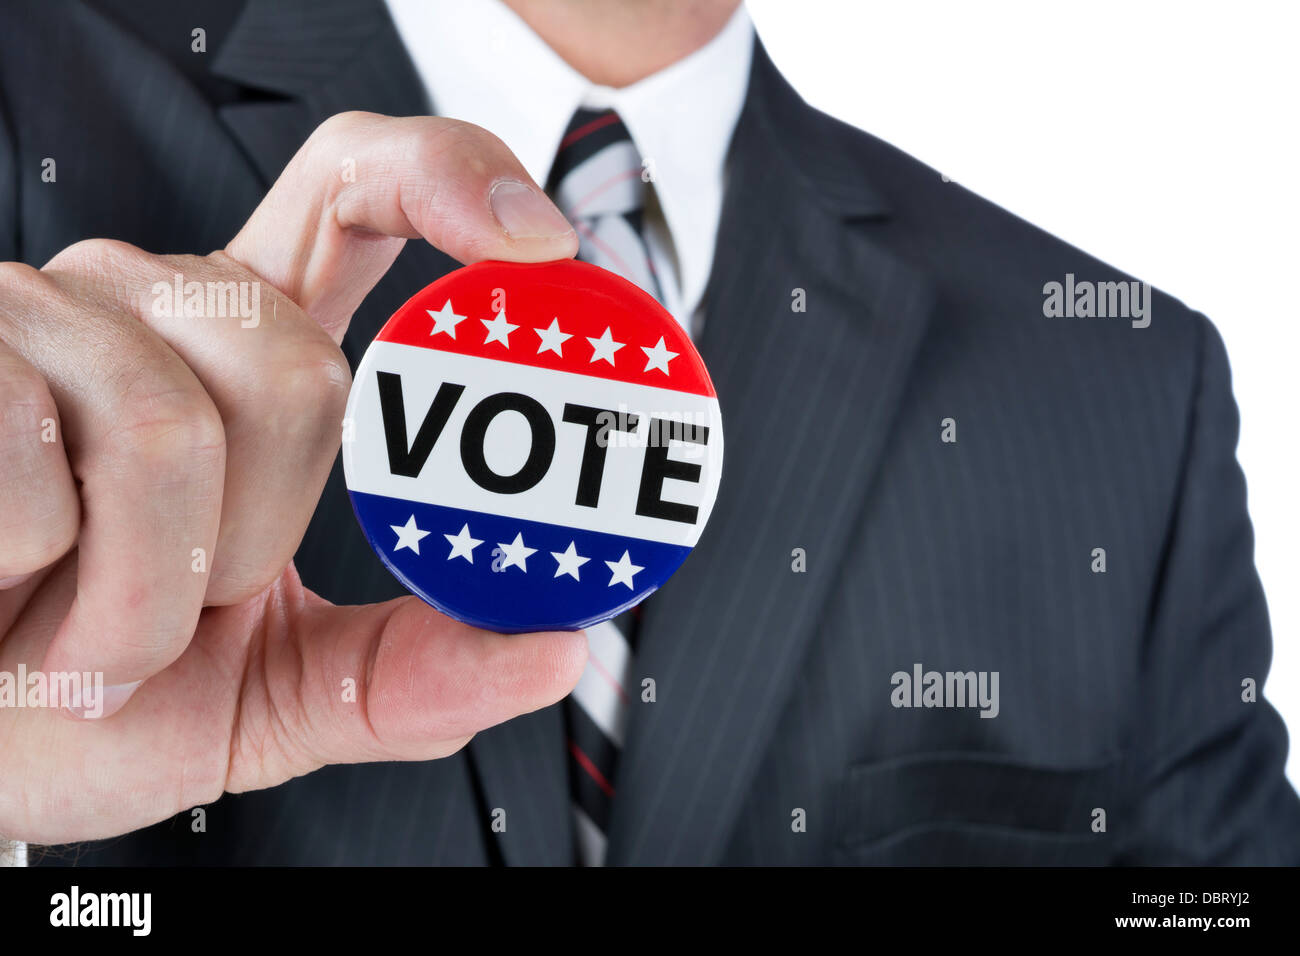 A politician is promoting the right to vote in political elections in the USA. - Stock Image